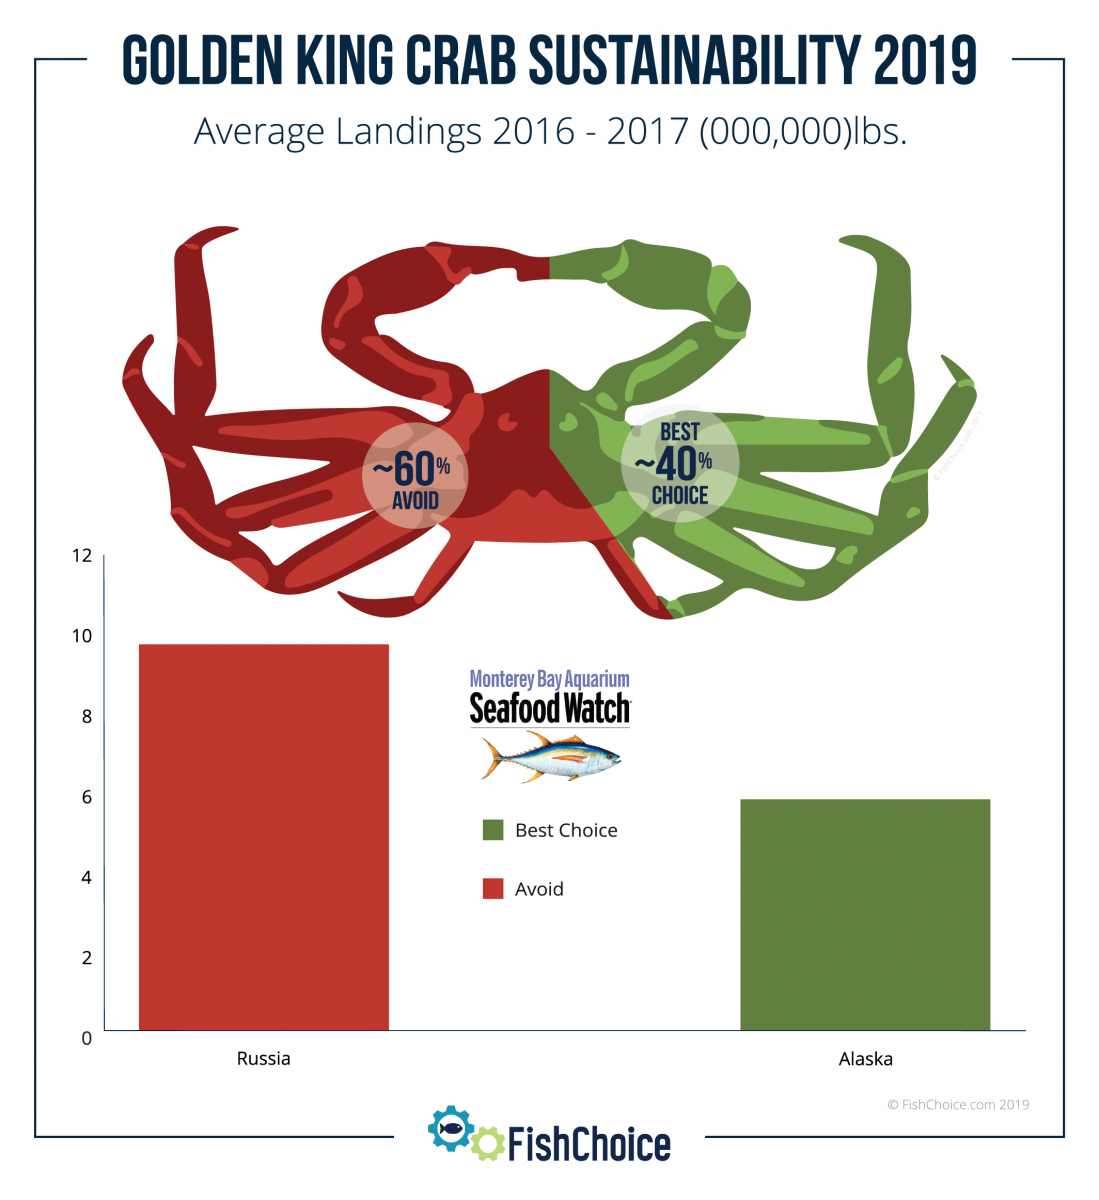 Golden King Crab Sustainability